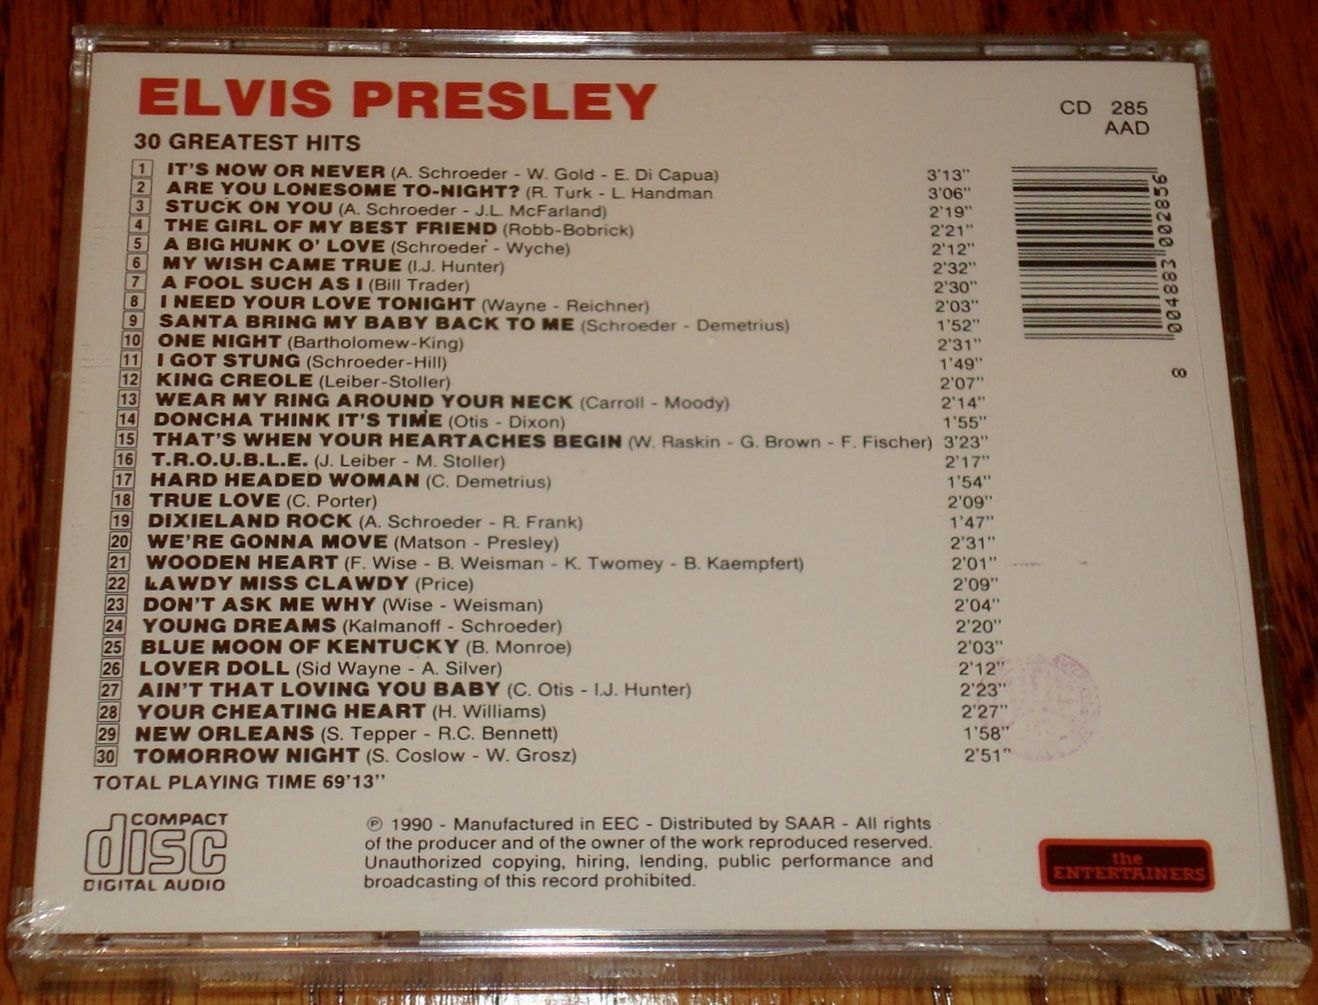 ELVIS PRESLEY 30 Greatest Hits Import CD from Italy S/S